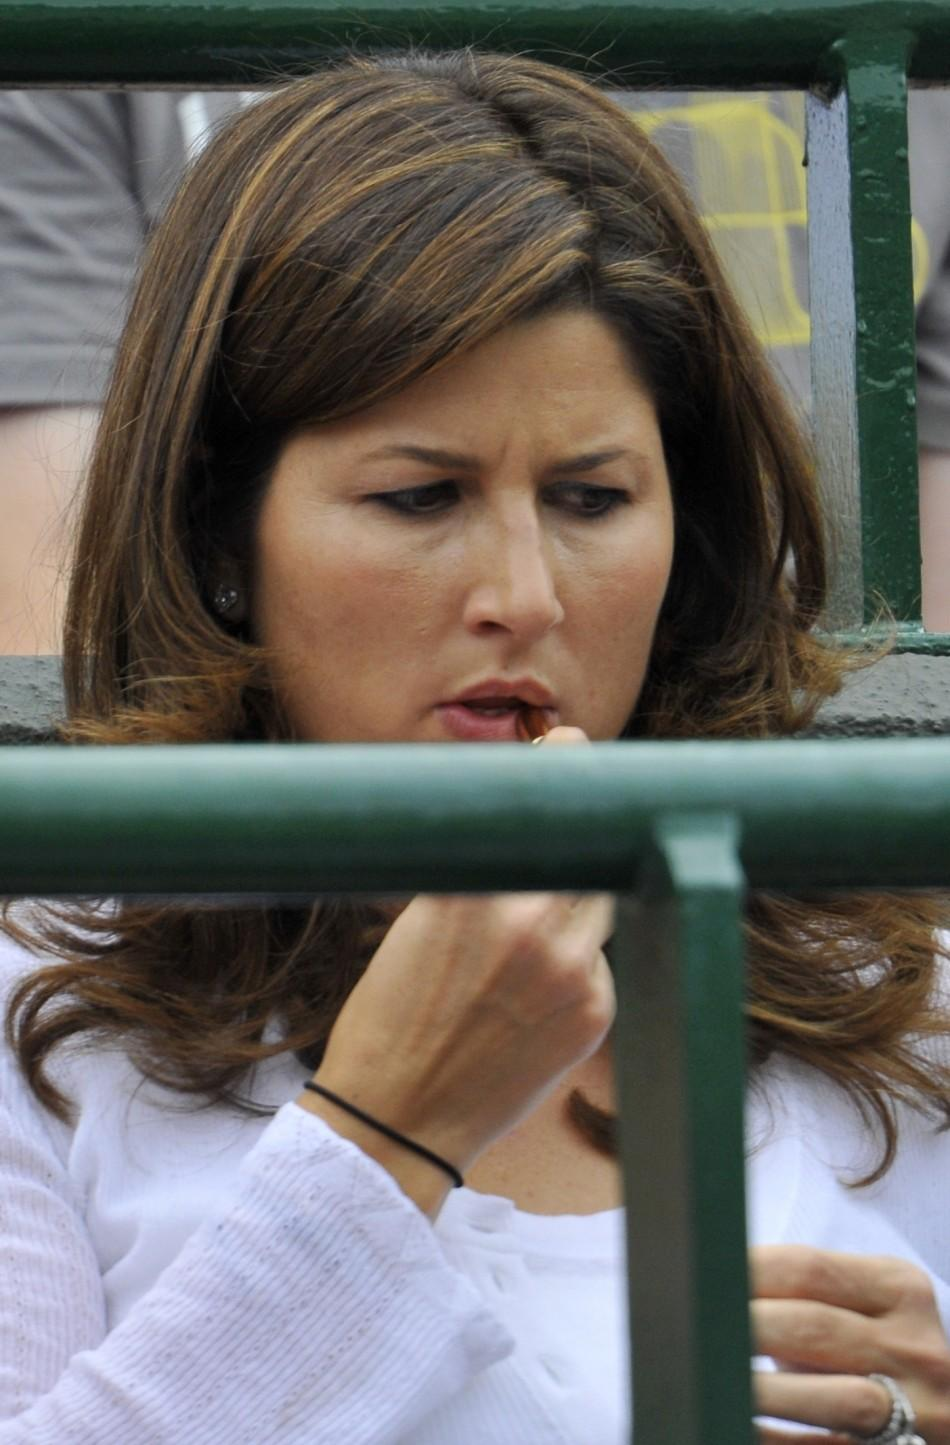 The wife of Roger Federer of Switzerland, Mirka Federer, sits on Court 1 for Federer's match against Mikhail Youzhny of Russia at the Wimbledon tennis championships in London